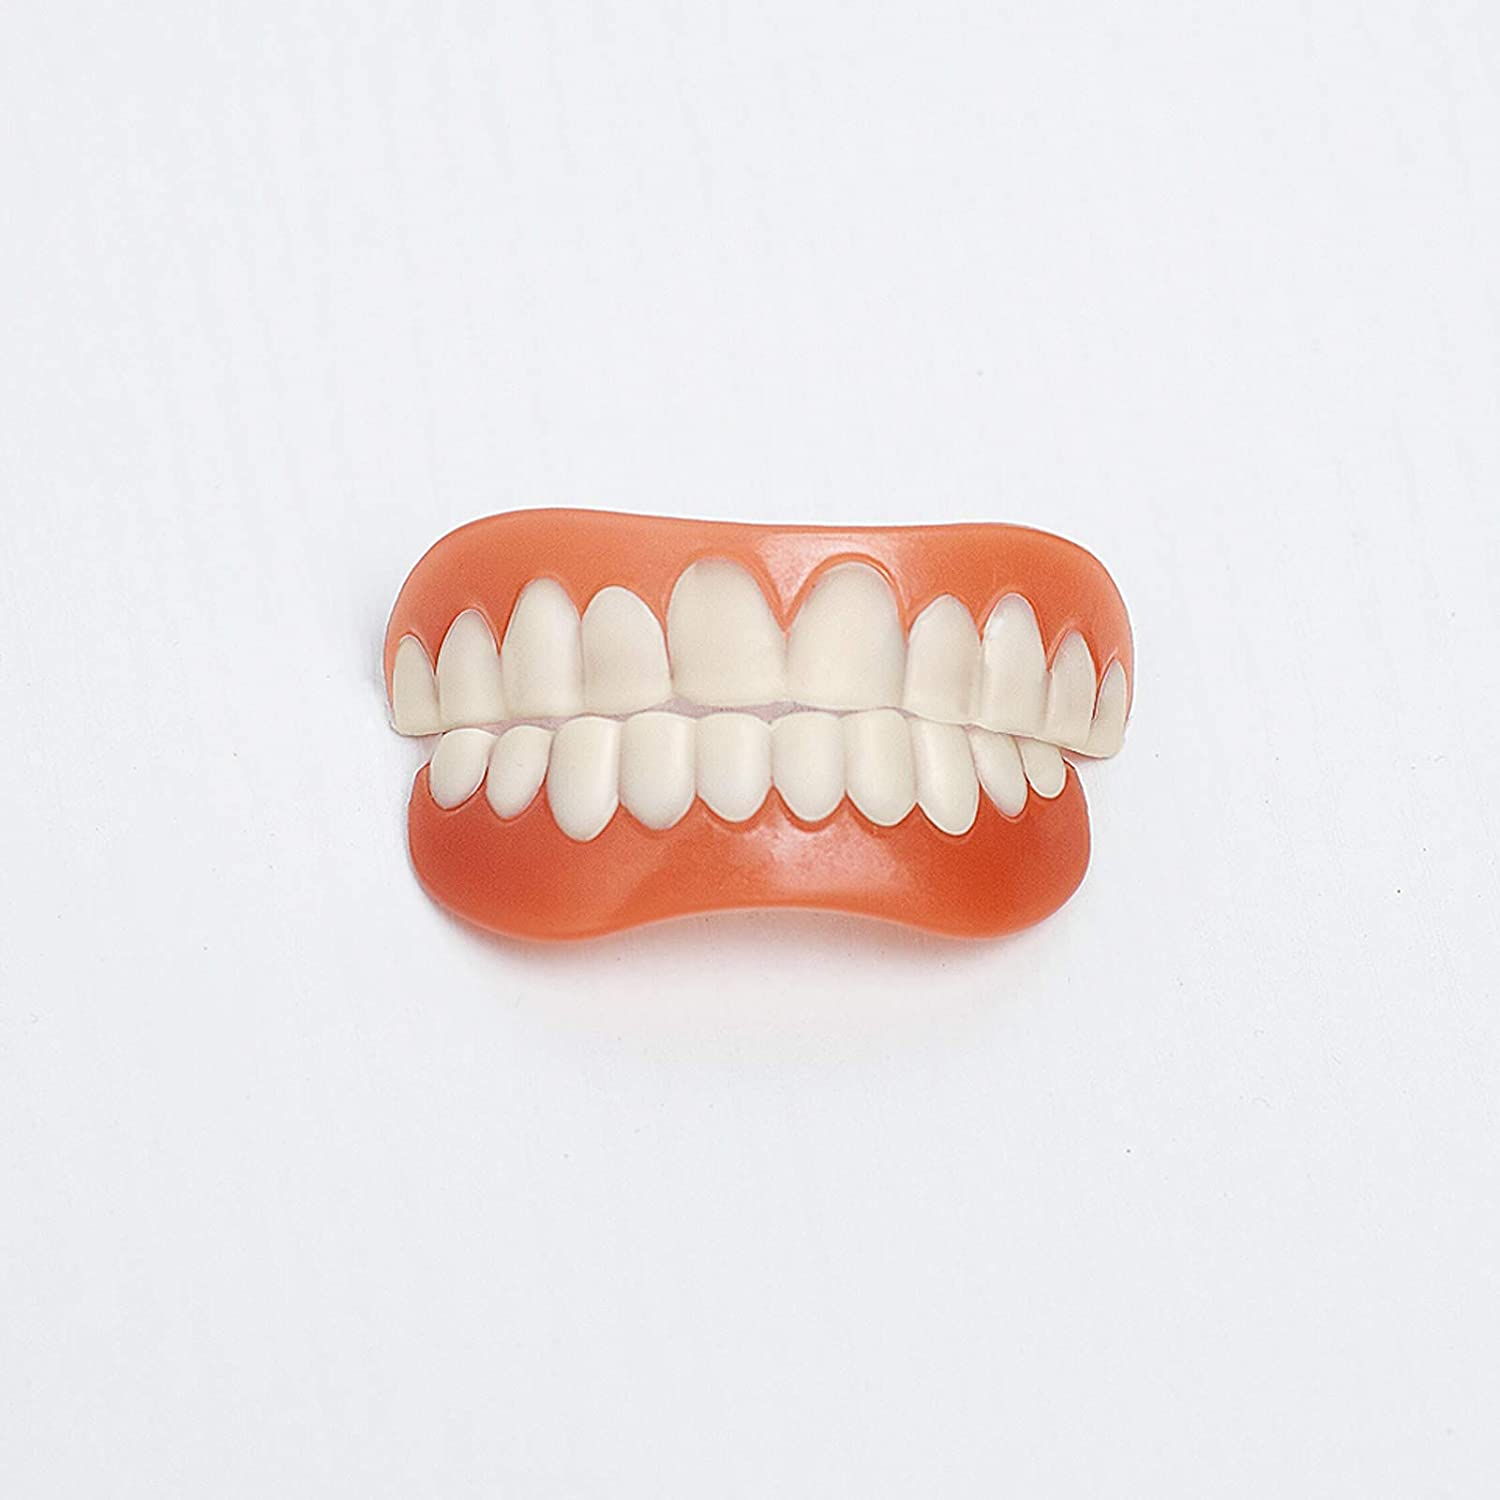 2 Pcs Quick Dentures Teeth Perfect Smile Cosmetic Teeth For Lower and Upper jaw Denture Smile Veneer, Natural Shade Comfort Fit Flex Veneers, Quickly Make You Own Perfect Smile (1 set 2PCS)